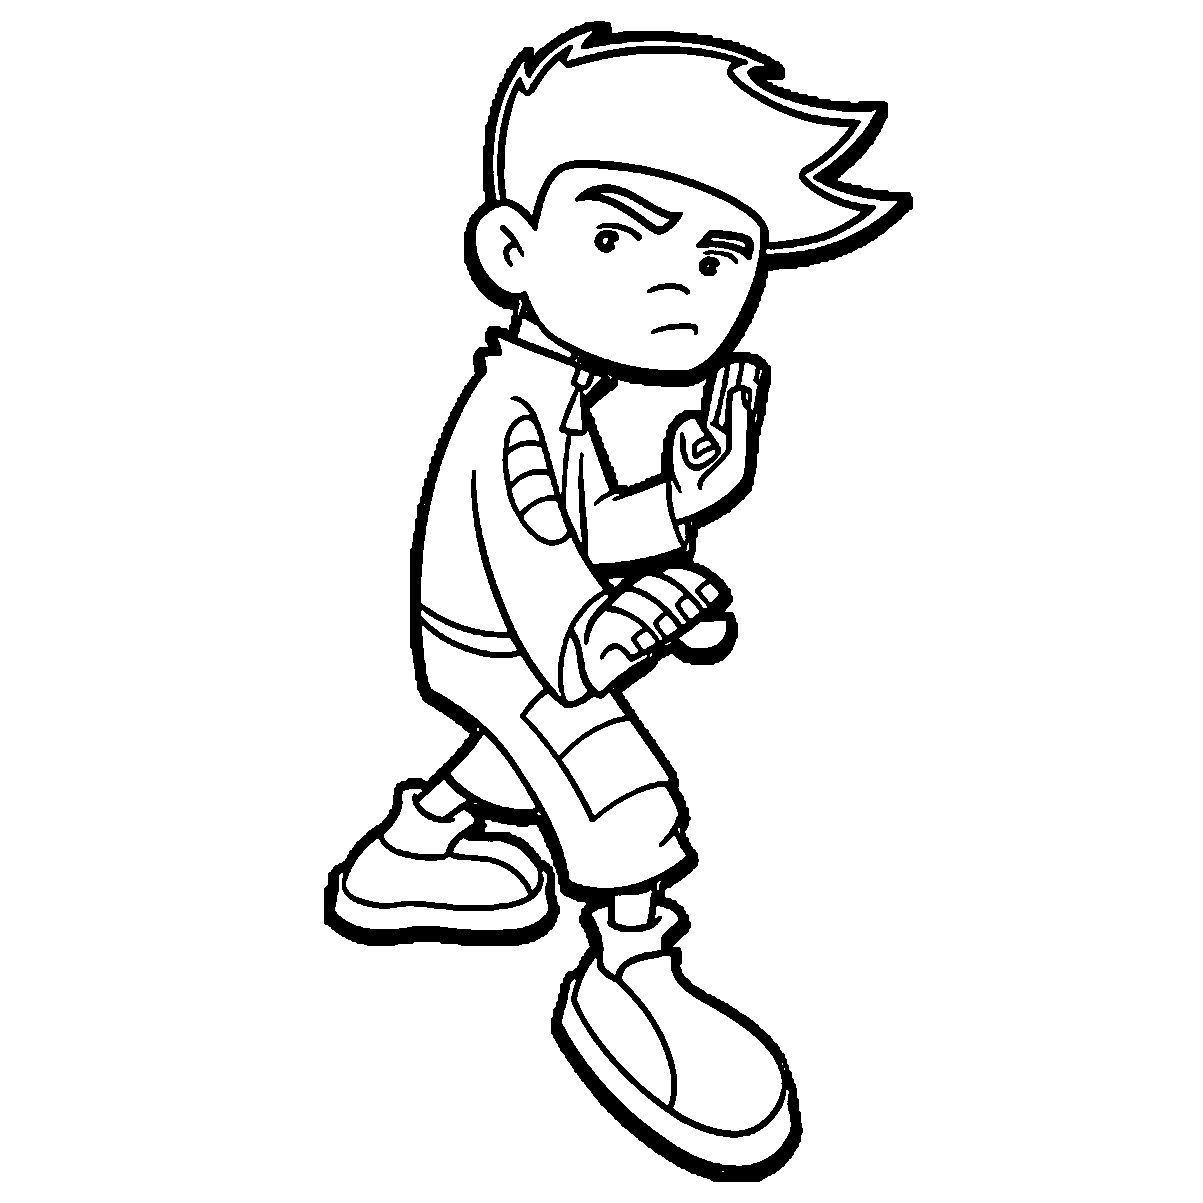 Grab Your New Coloring Pages Jake Paul Free Https Gethighit Com New Coloring Pages Jake Paul Free American Dragon Puppy Coloring Pages Coloring Pages